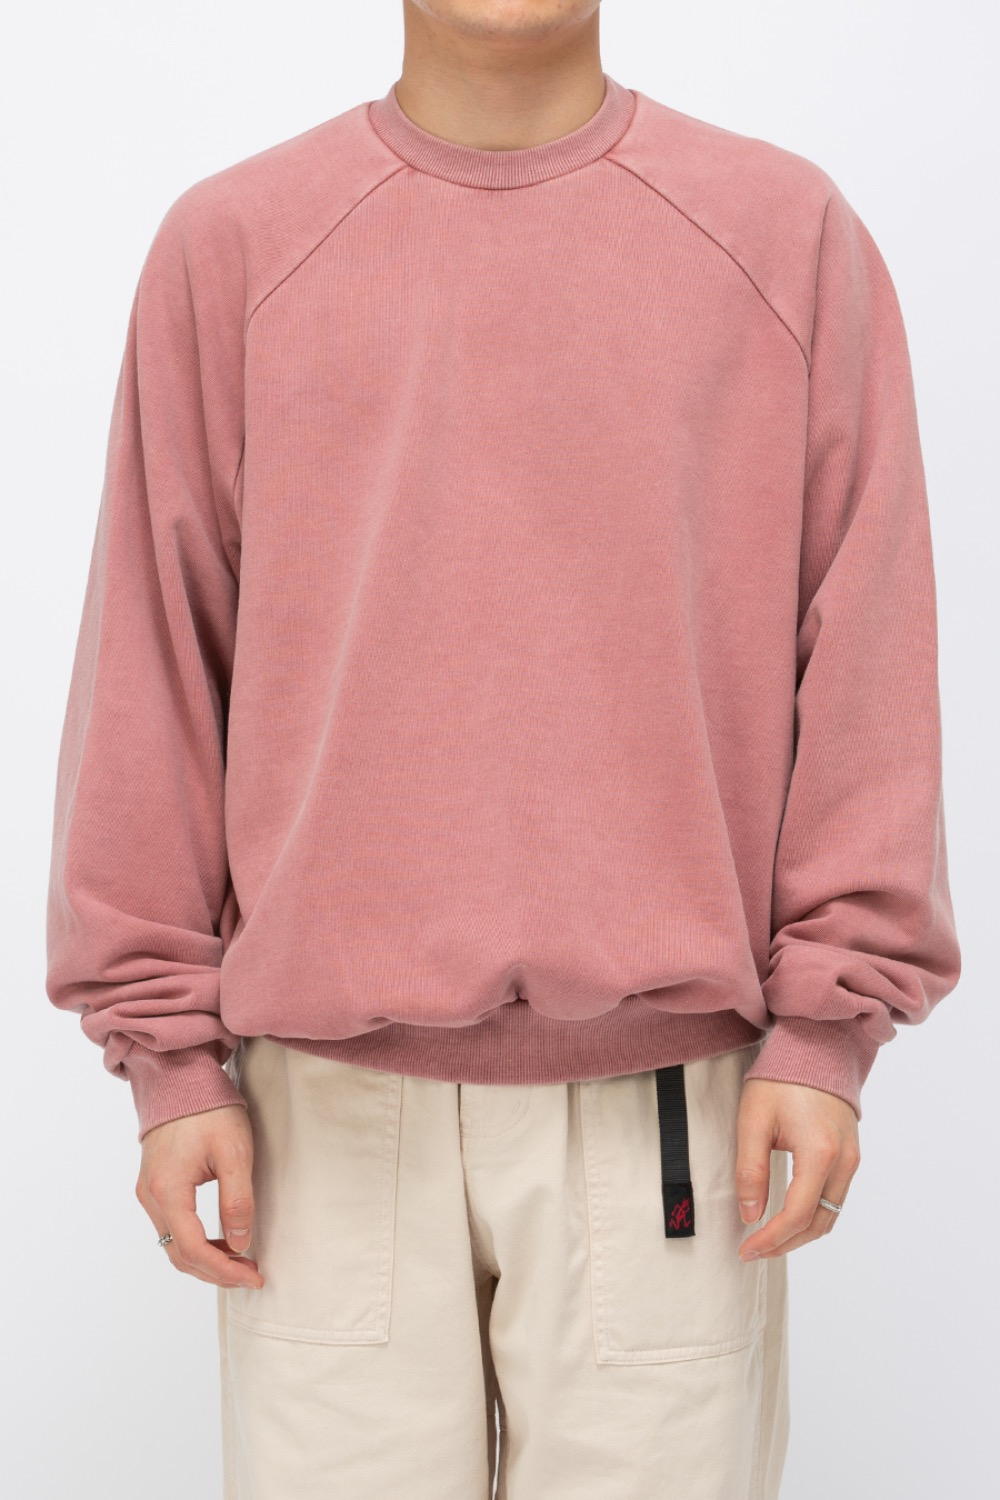 HEAVY WEIGHT OVERSIZE SWEATSHIRT WASHED(PREMIUM BASIC) PINK